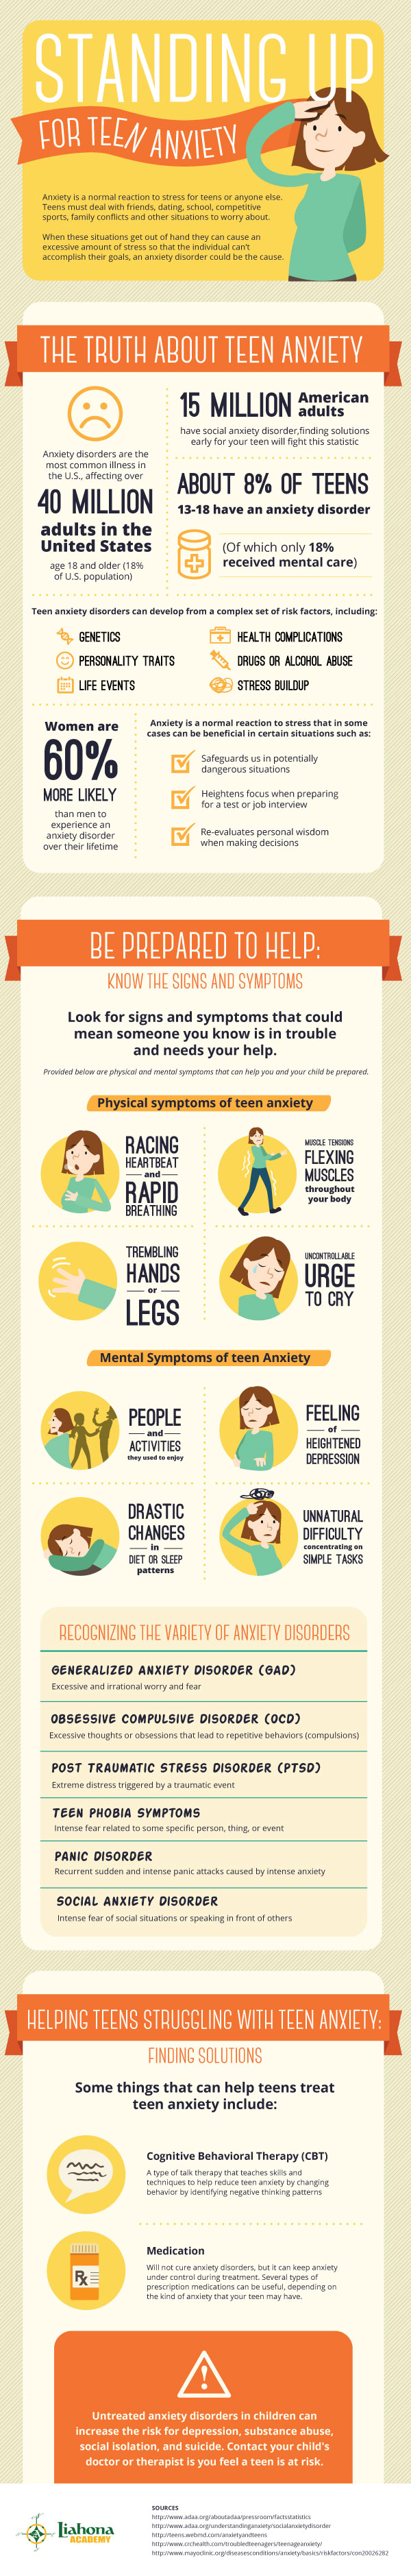 Teen Anxiety Disorders: Stand Up and Fight - Infographic